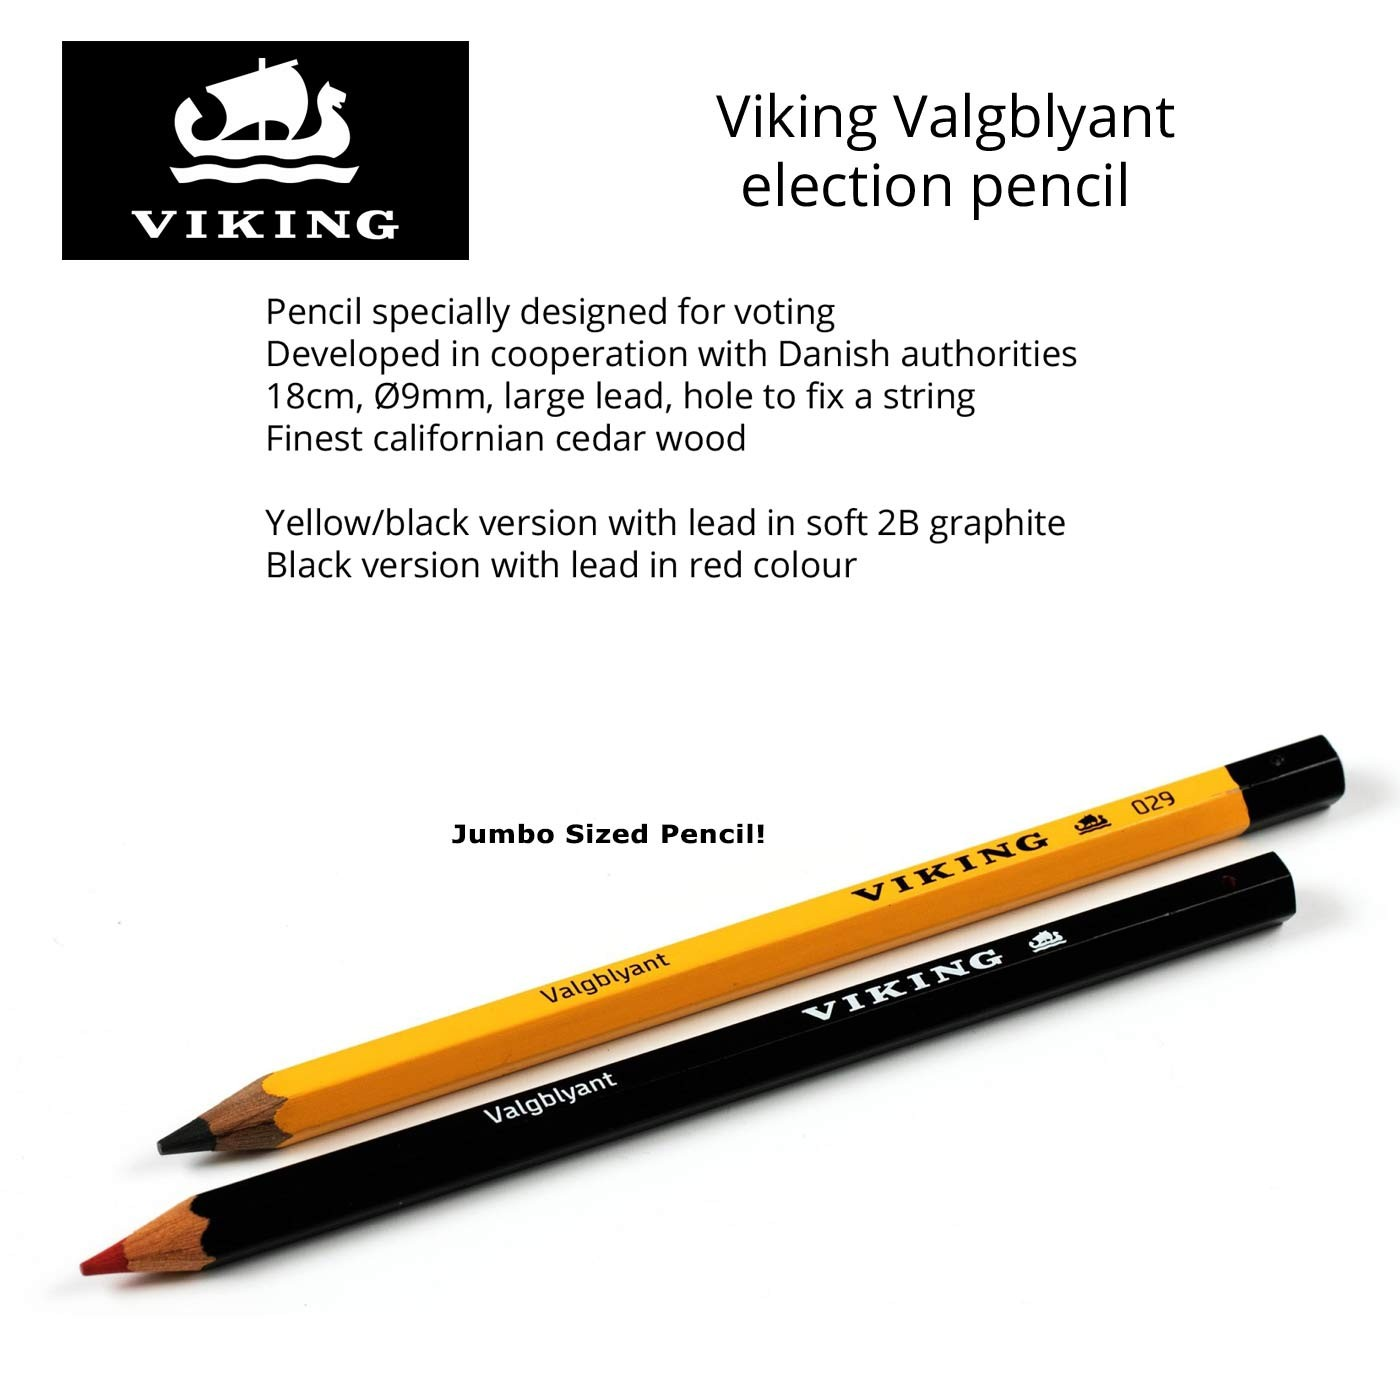 2 pack viking valgblyant election pencil jumbo writing pencils 1 red 1 graphite made in